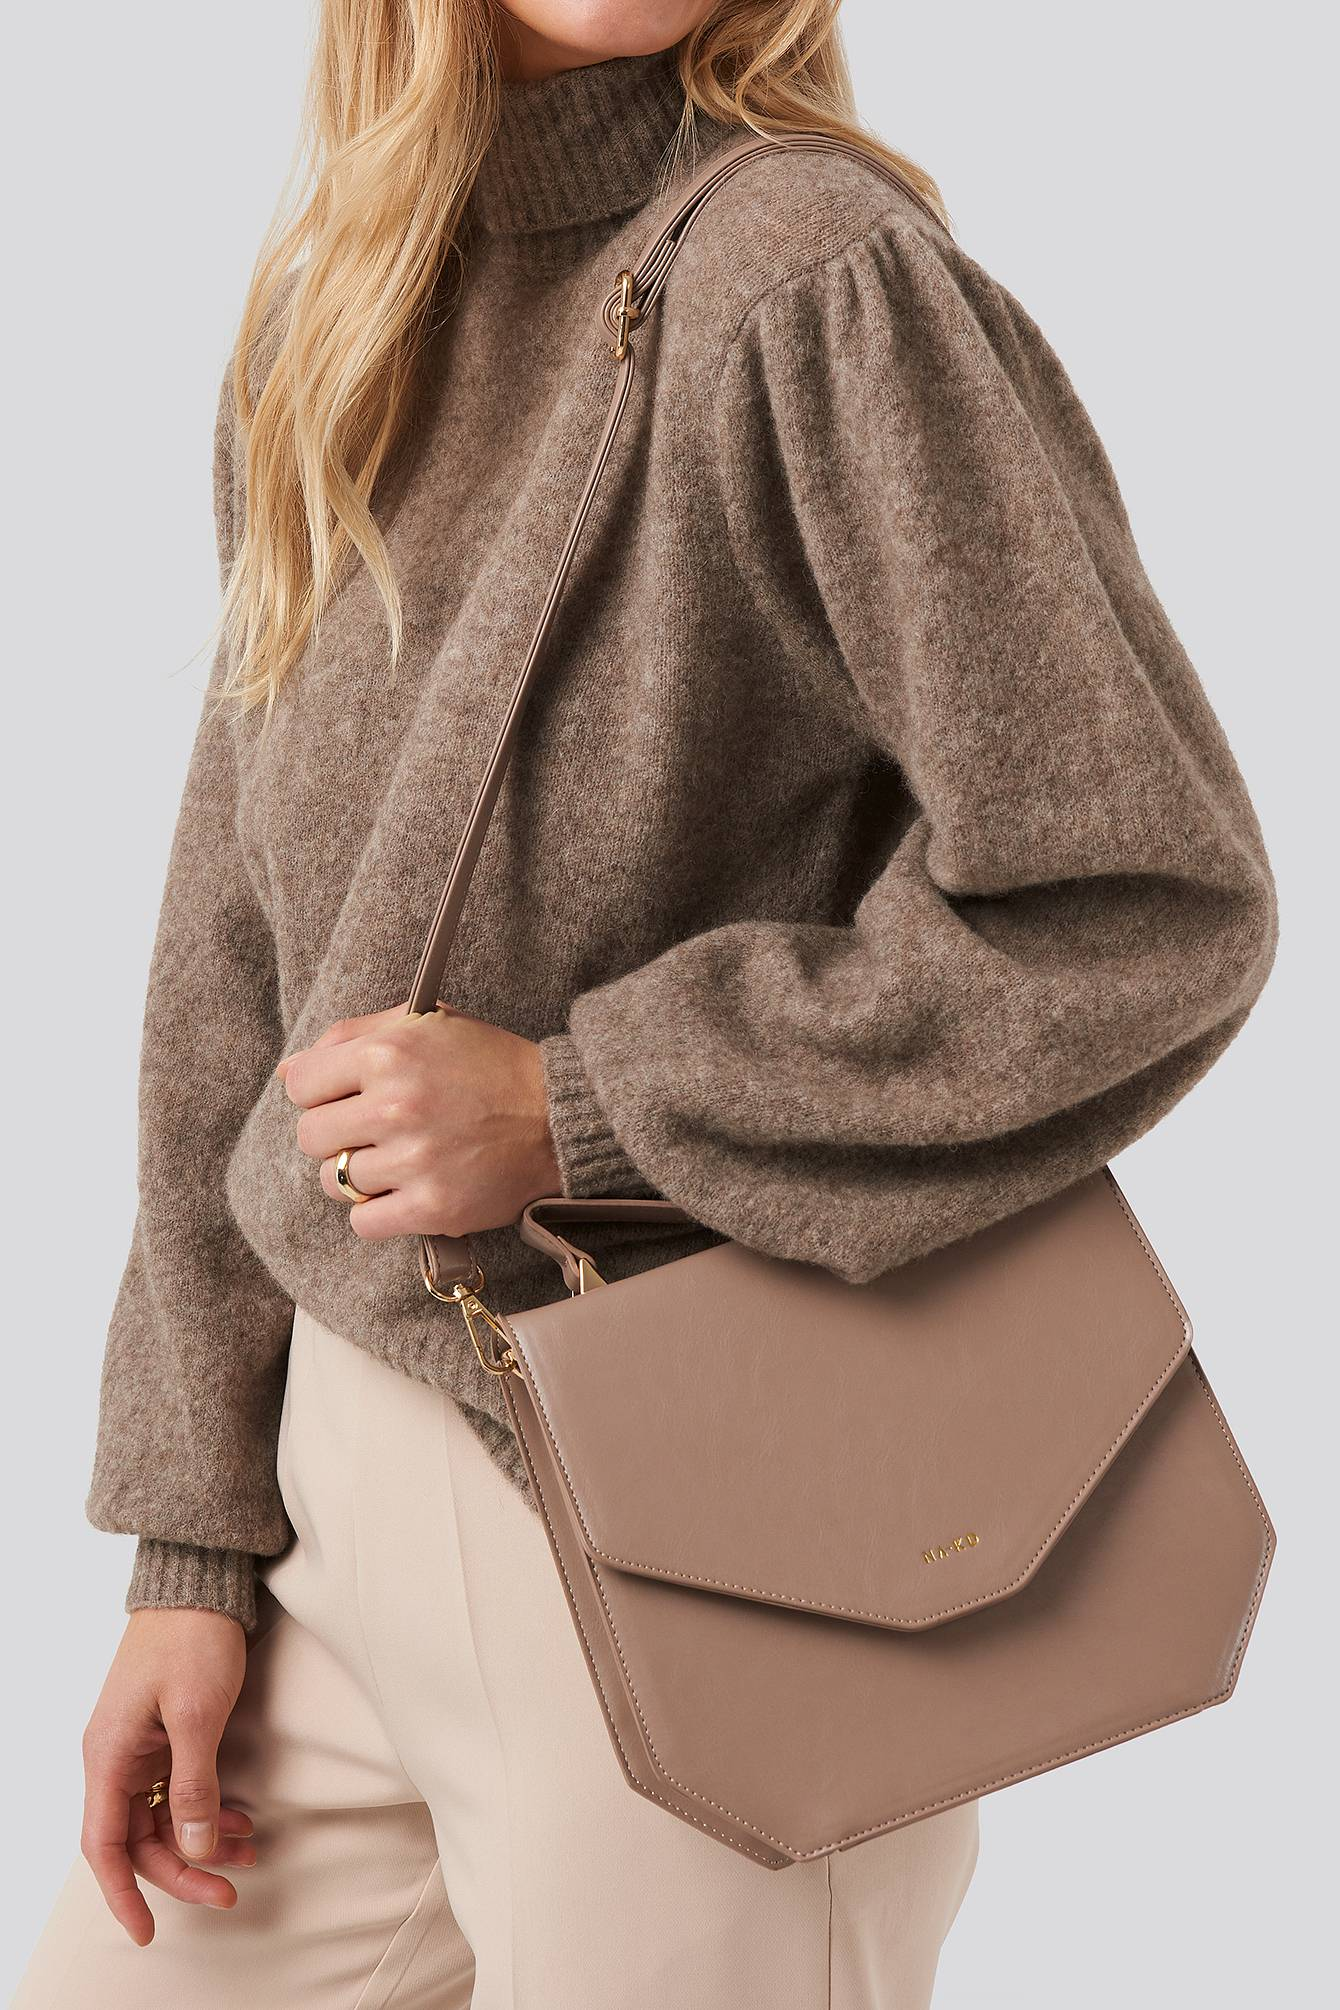 NA-KD Accessories Small Squared Box Bag - Beige  - Size: One Size